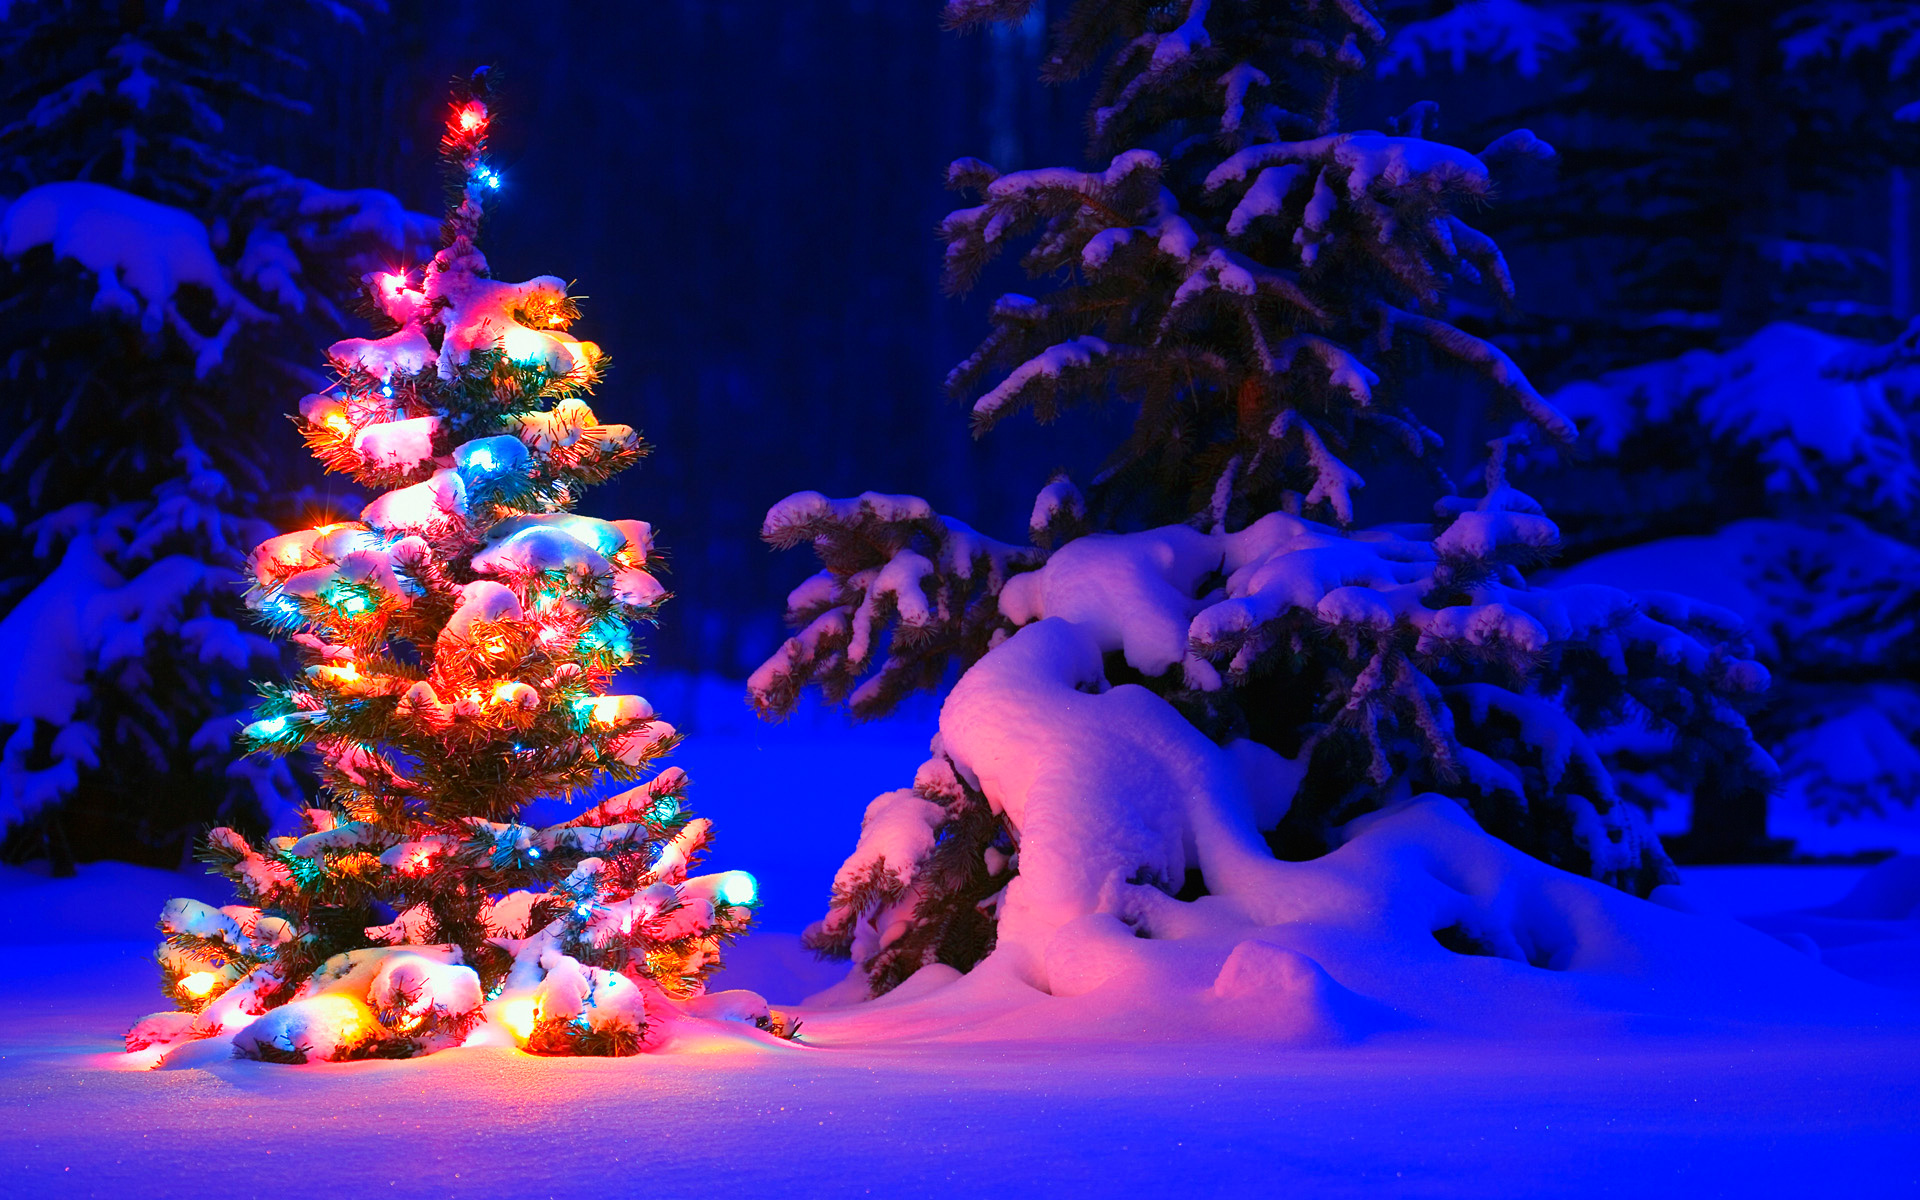 Merry Christmas 2020 HD Wallpapers